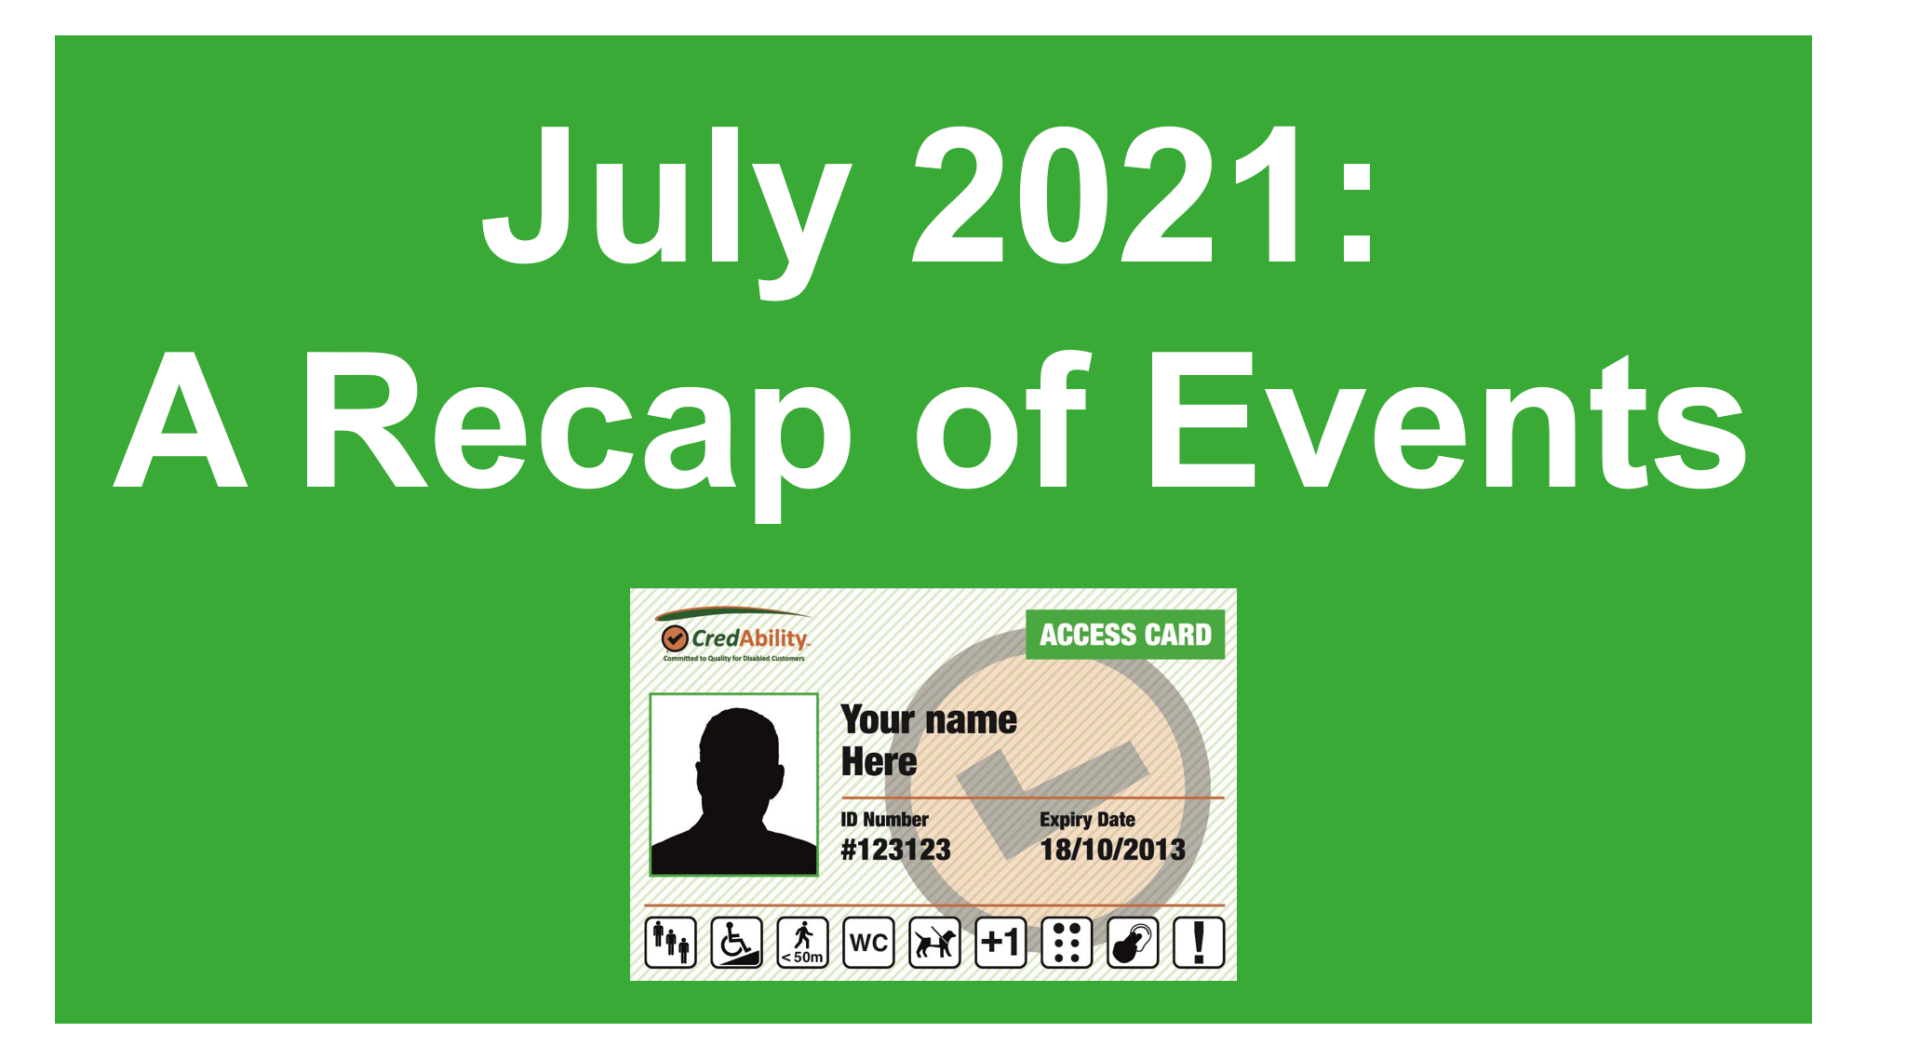 july 2021 recap of events graphic